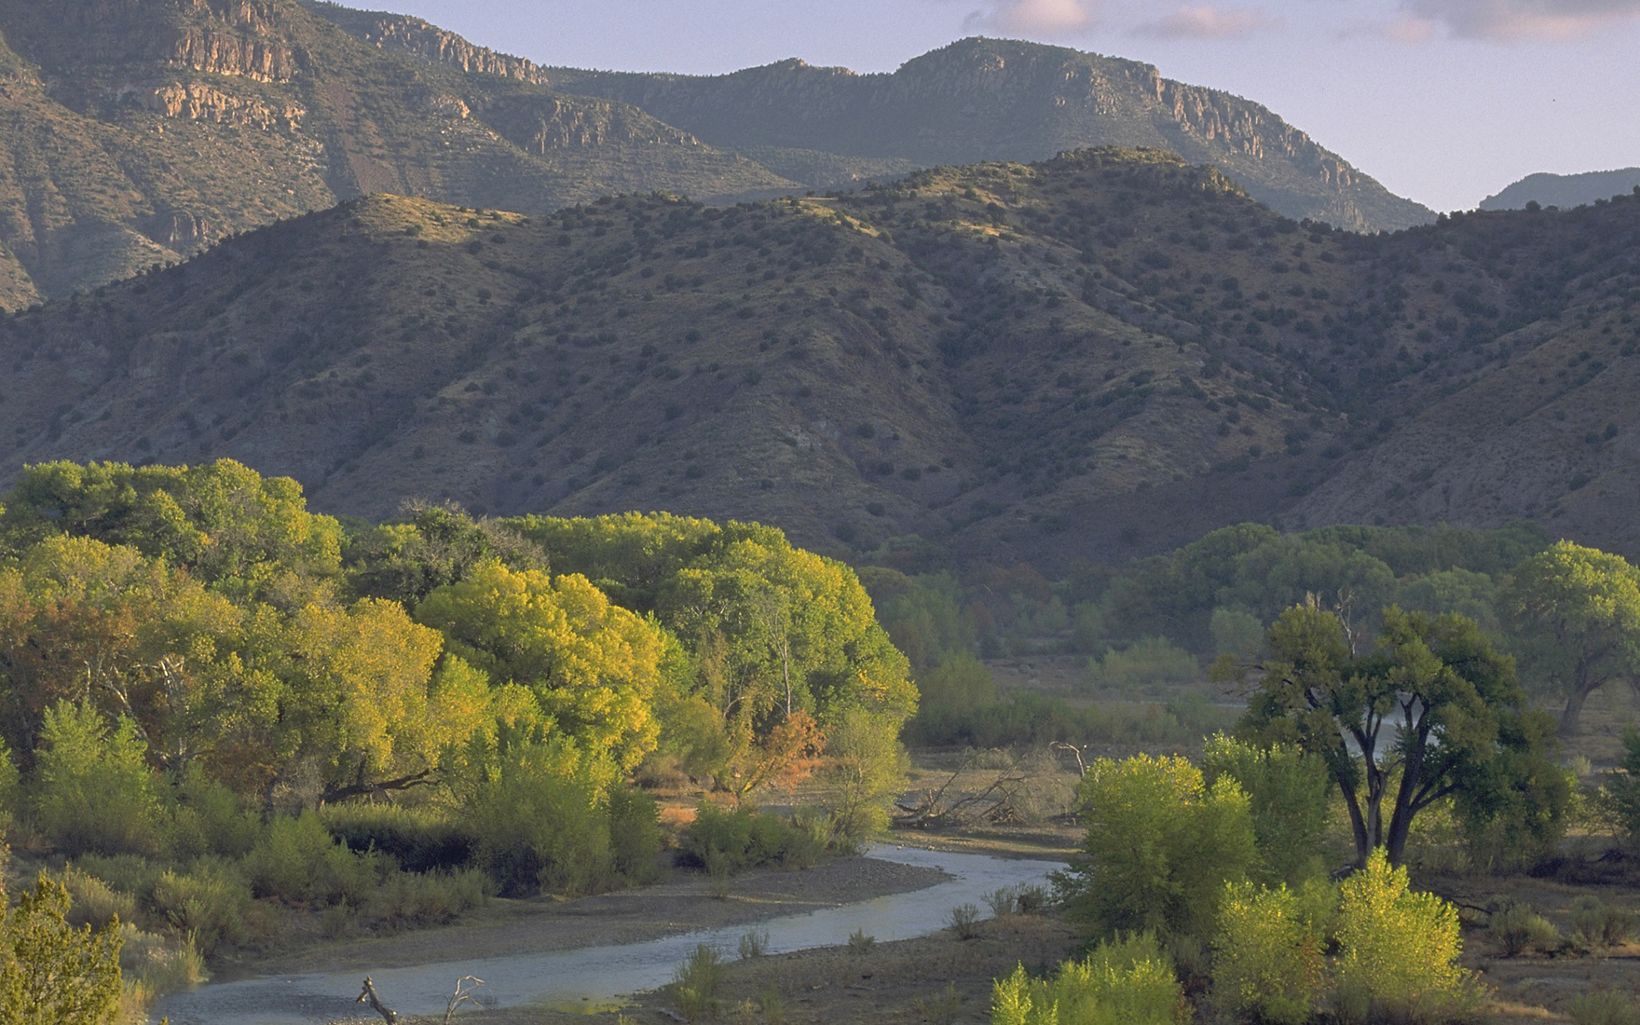 Fall colors along the Gila River with hills in the background.